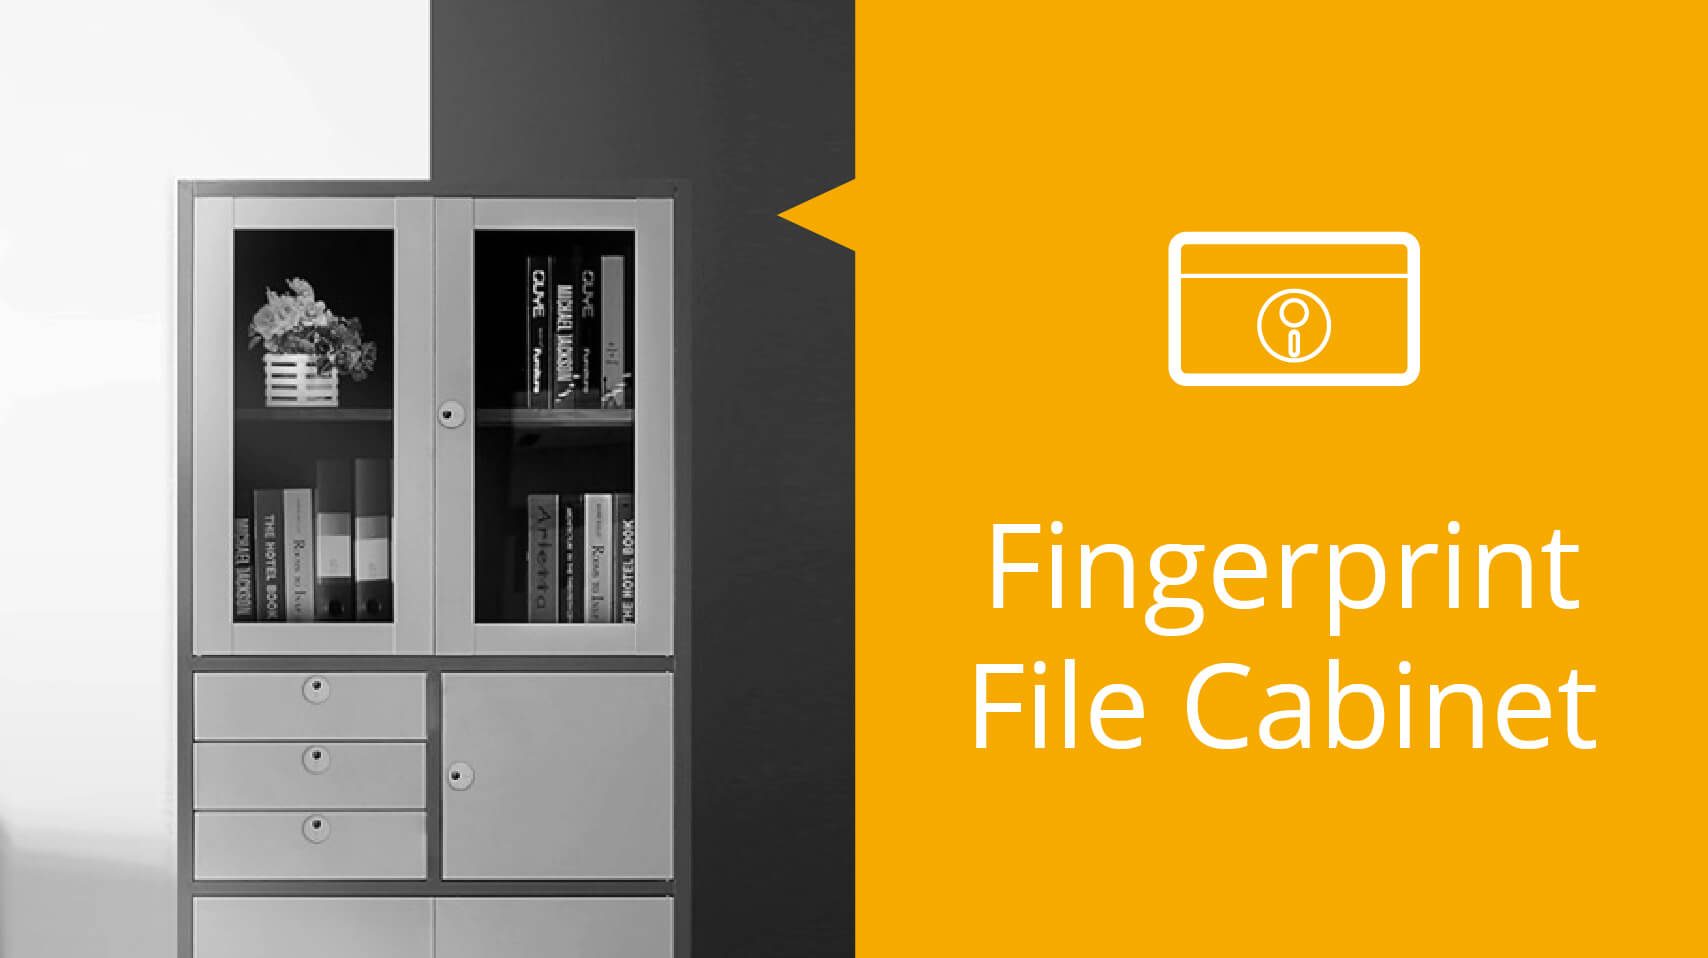 Customization service of fingerprint module for File Cabinet